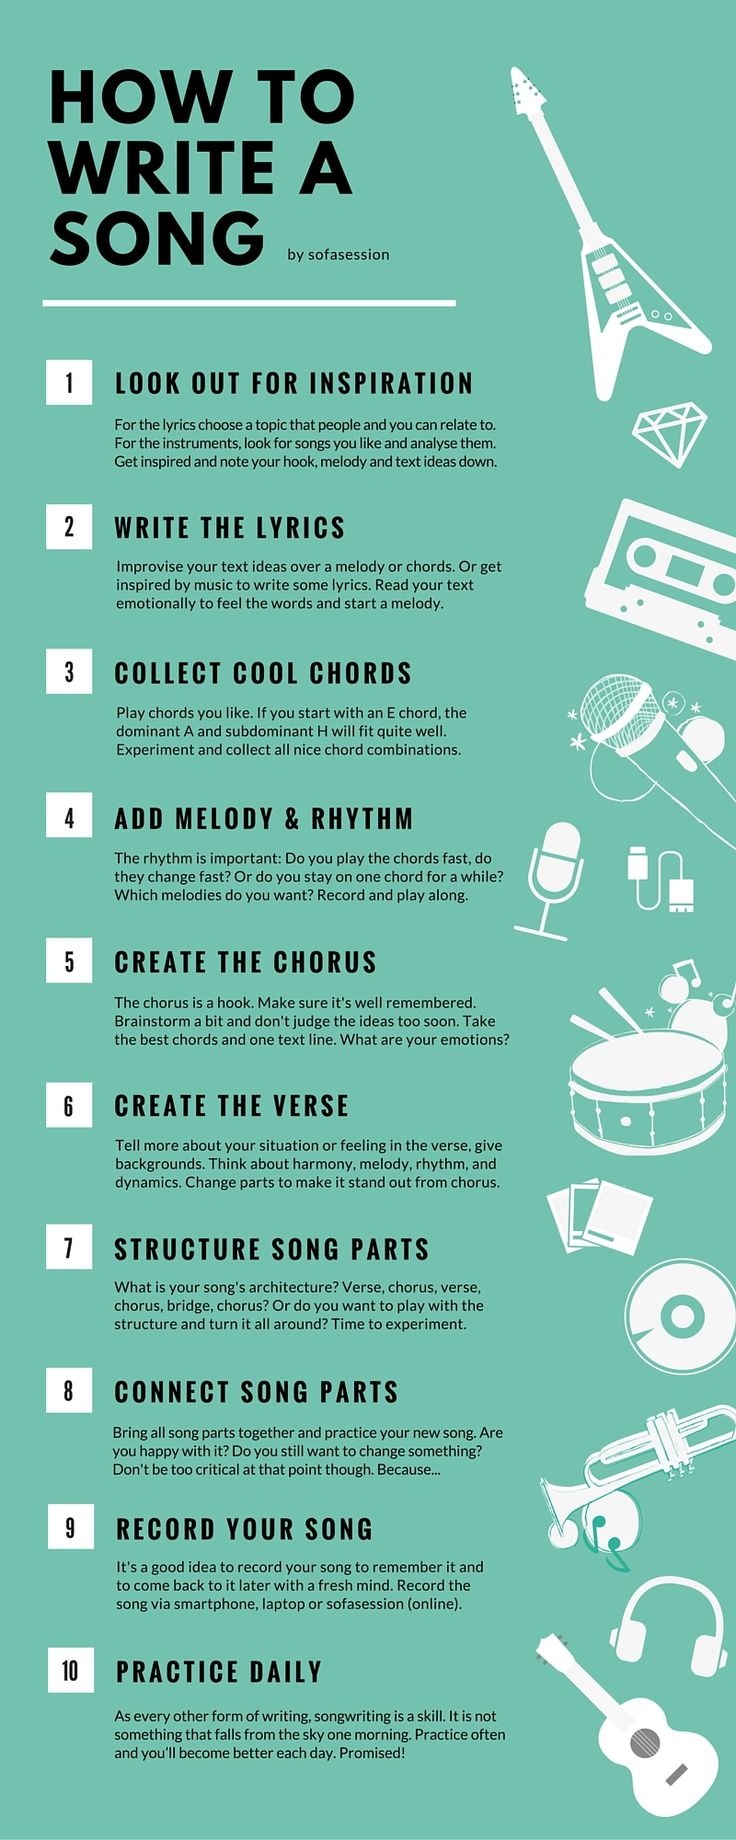 best images about songwriting drums charts and how to write a song in 10 steps as a beginner the infographic shows you